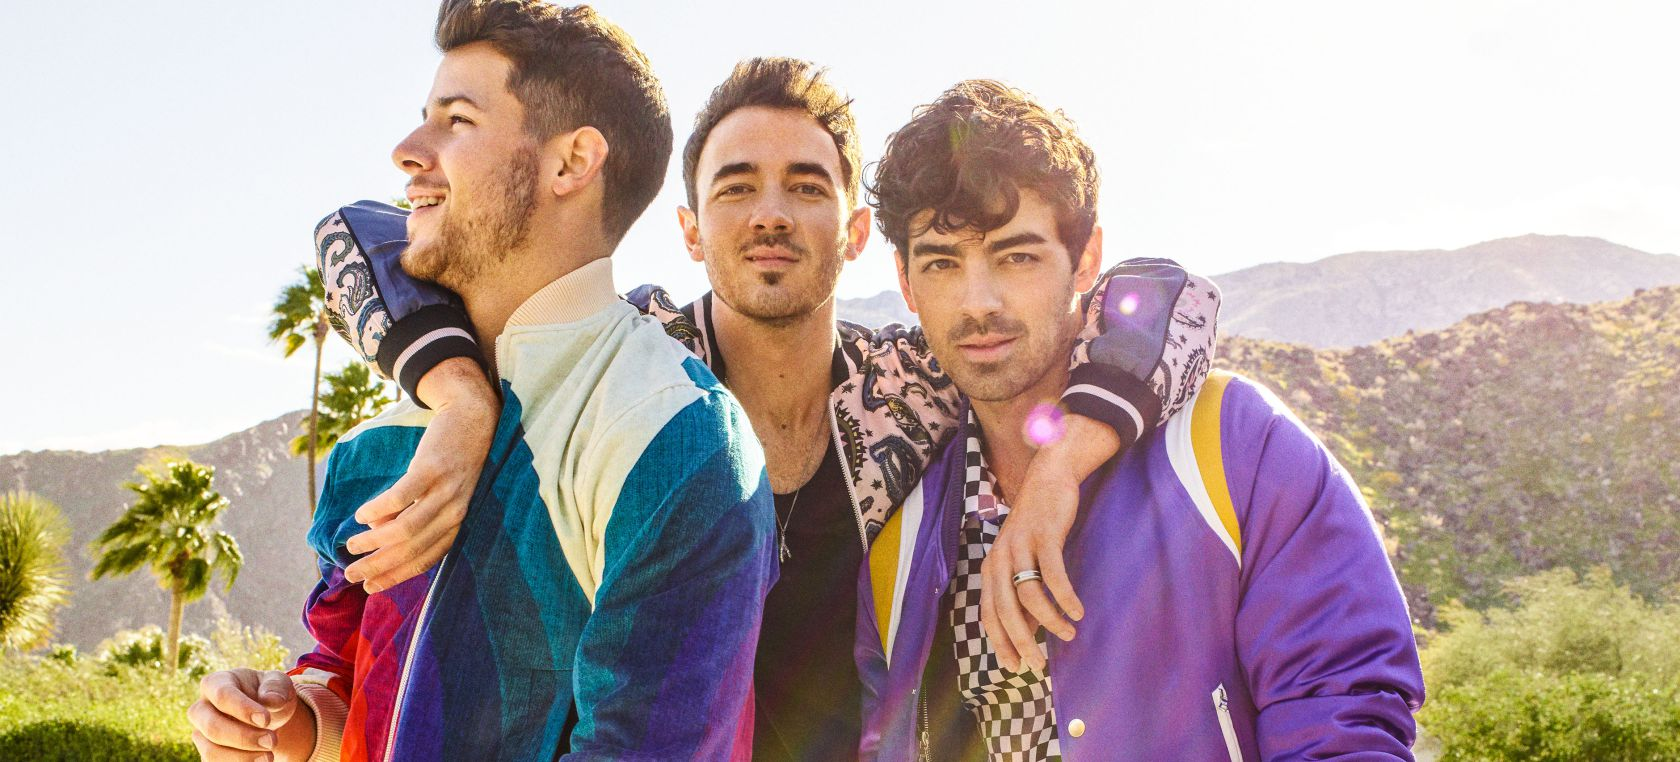 Consigue un Meet & Greet con Jonas Brothers en Madrid y Barcelona